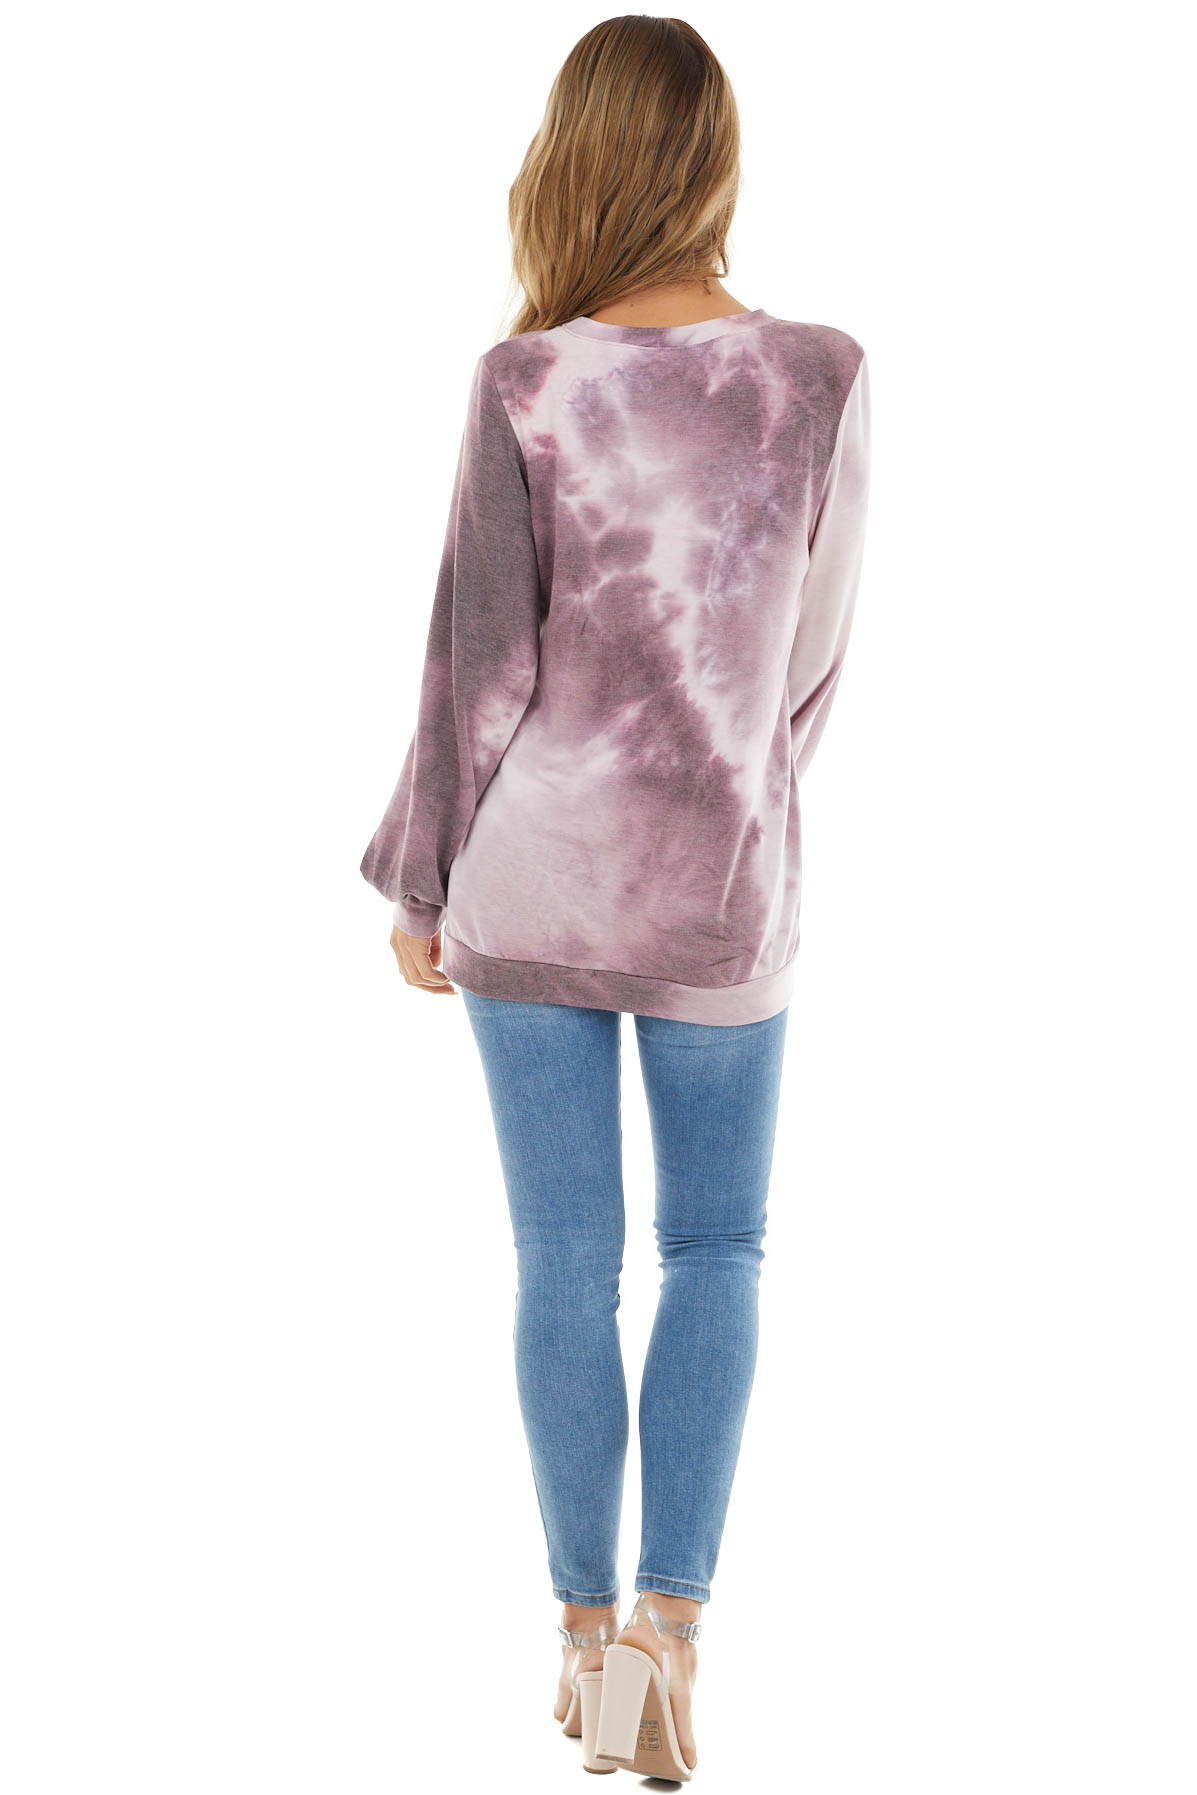 Lavender Tie Dye Long Sleeve Knit Top with Front Cutout